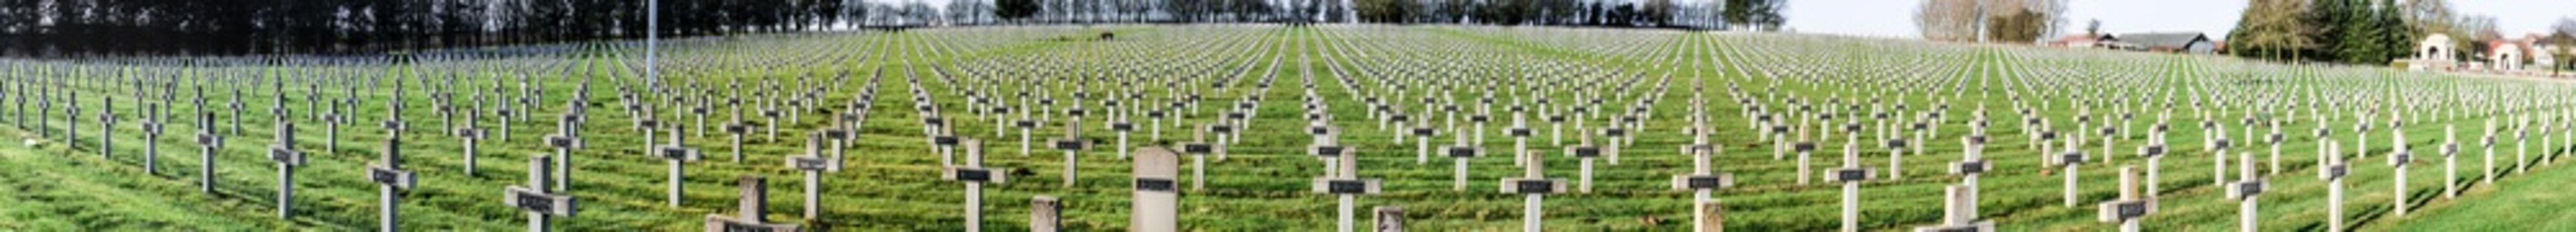 Panorama Cemetery world war one in France Vimy La Targette